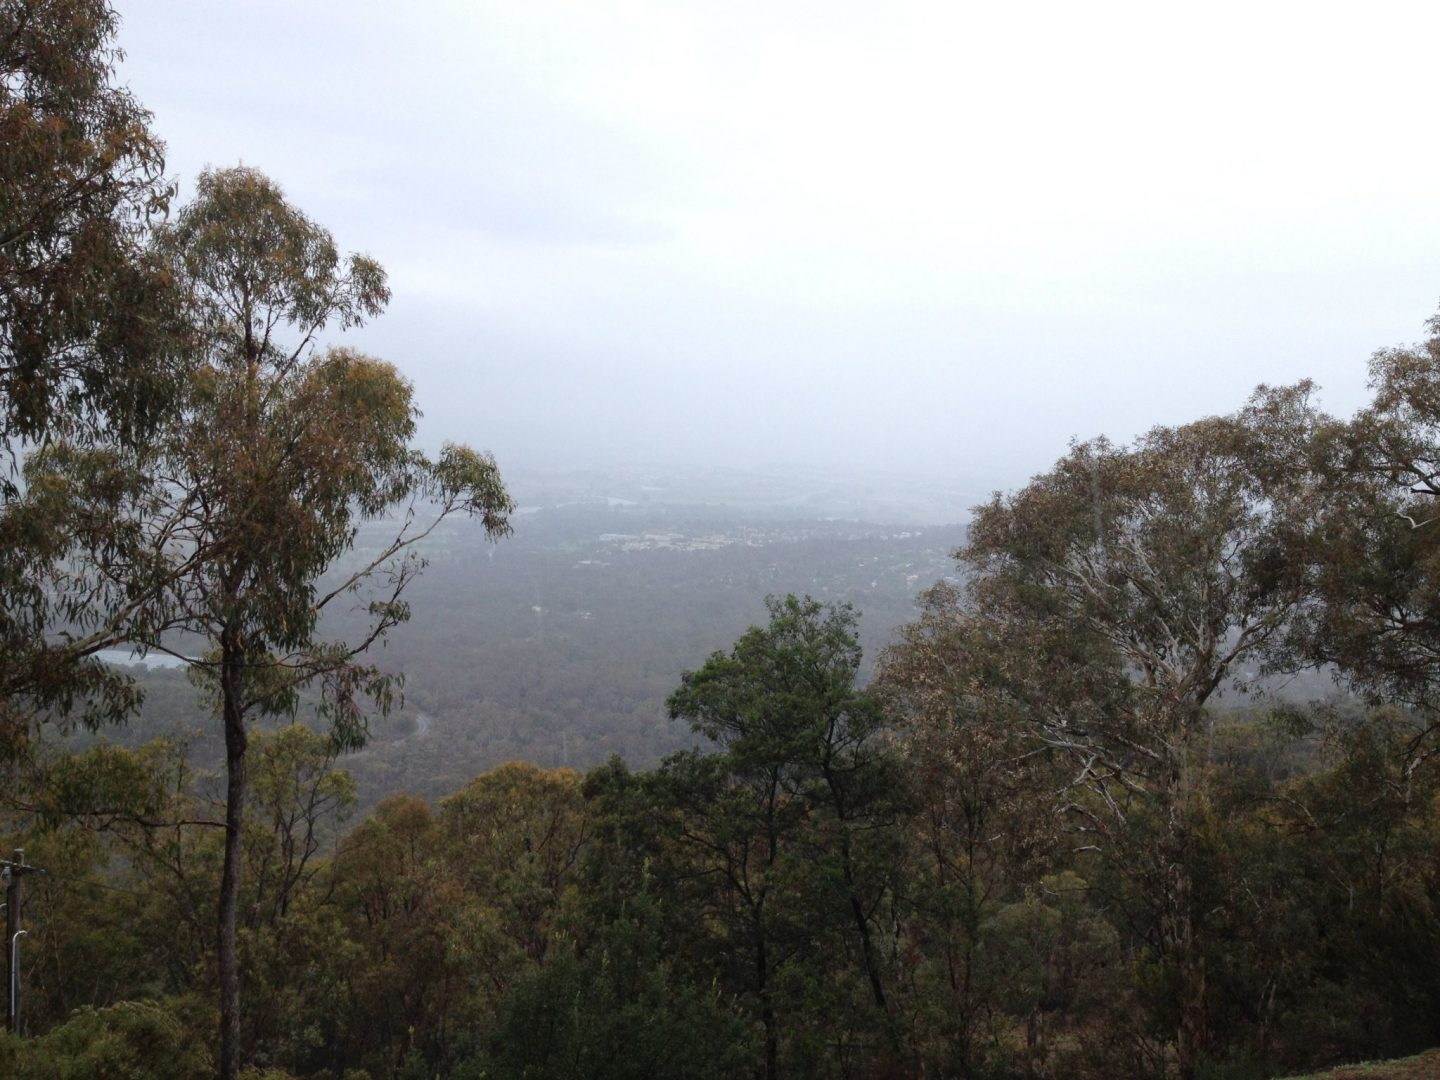 Misty views of Canberra, Australia